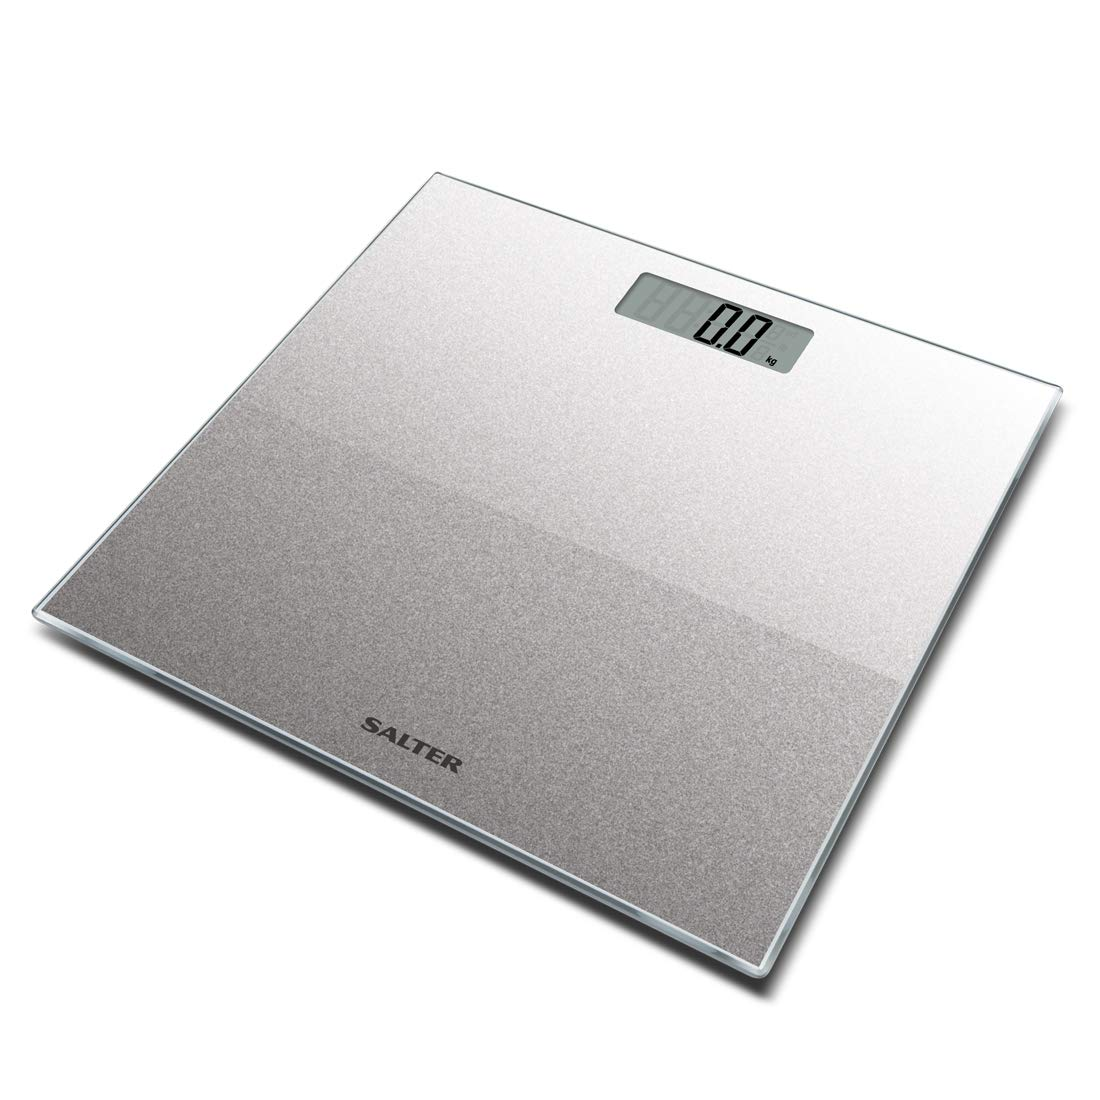 Salter Glitter Bathroom Scales – Supersize Digital Display Electronic Scale for Precise Weighing, Toughened Glass Platform, Step-On for Instant Reading, Metric + Imperial. 15 Year Guarantee - Silver FKA Brands Ltd 9037 SVGL3R